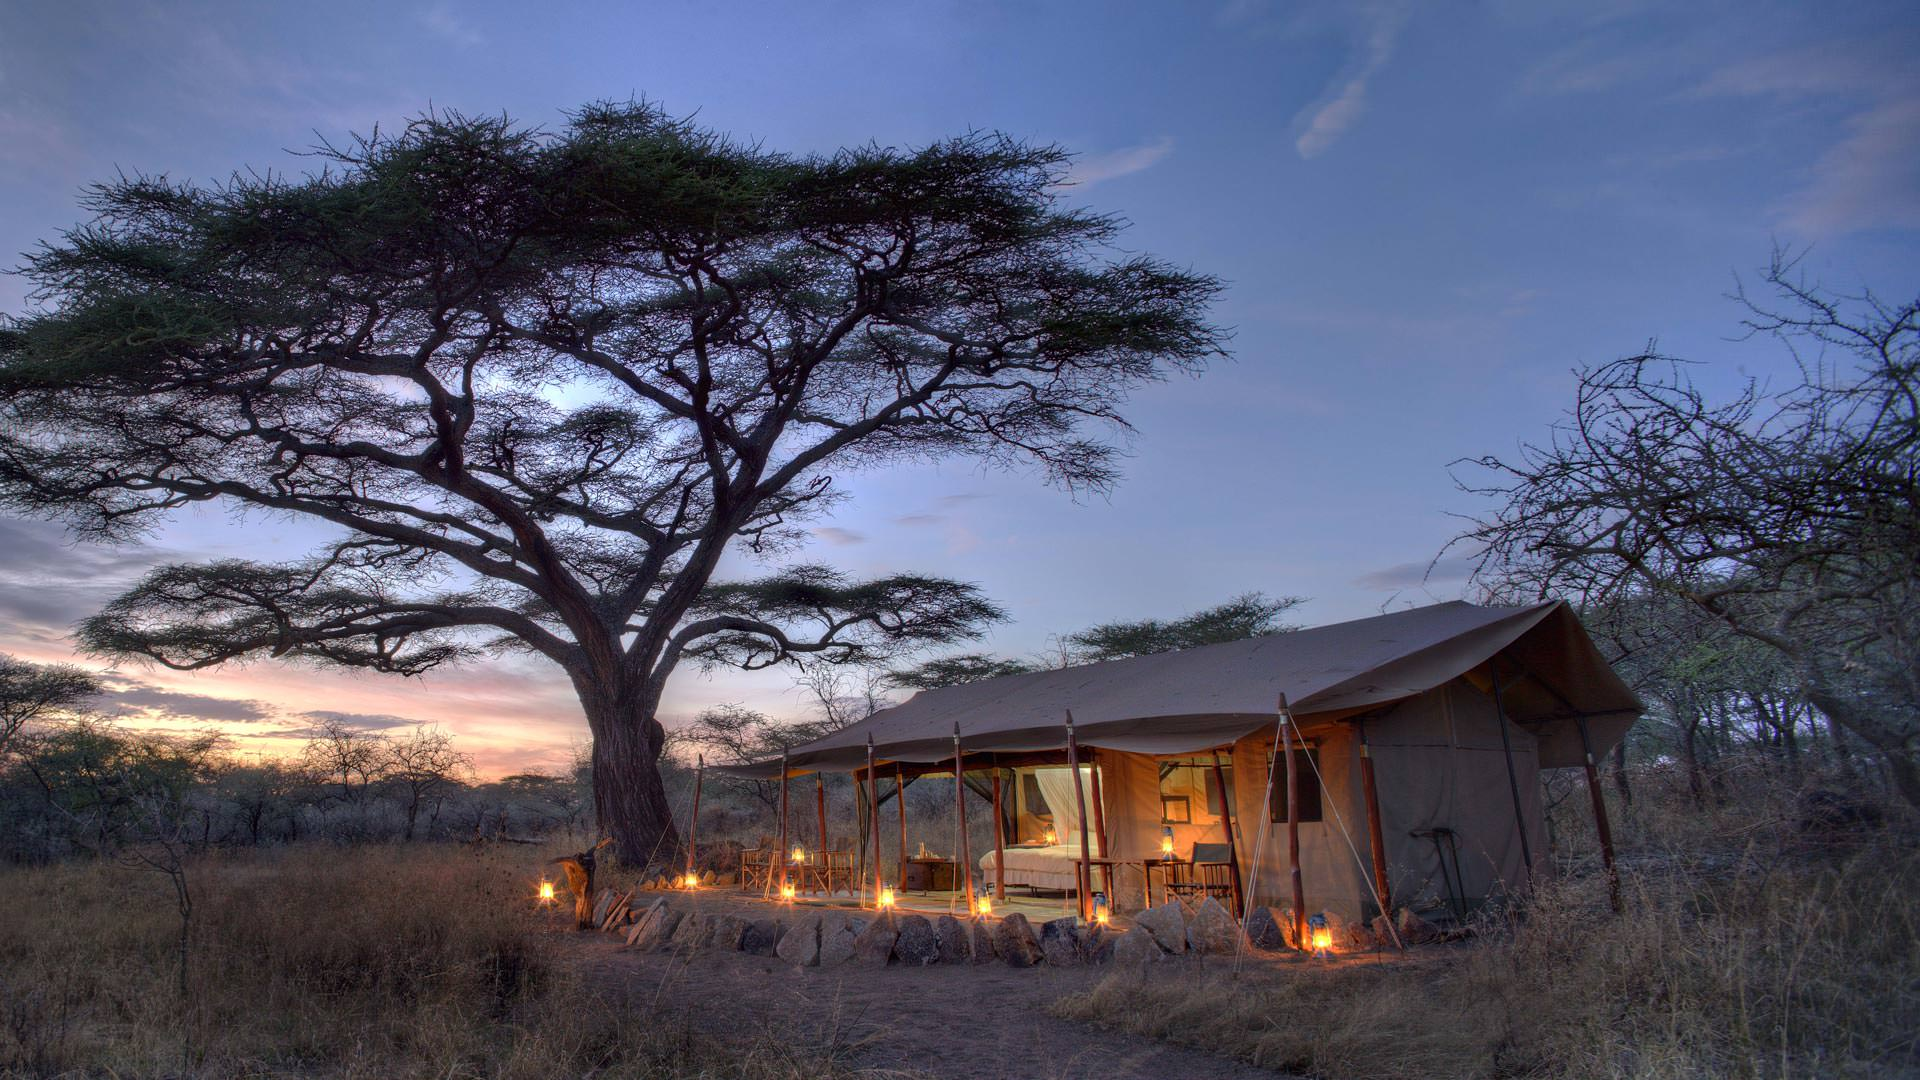 Mbono guest tent at dusk